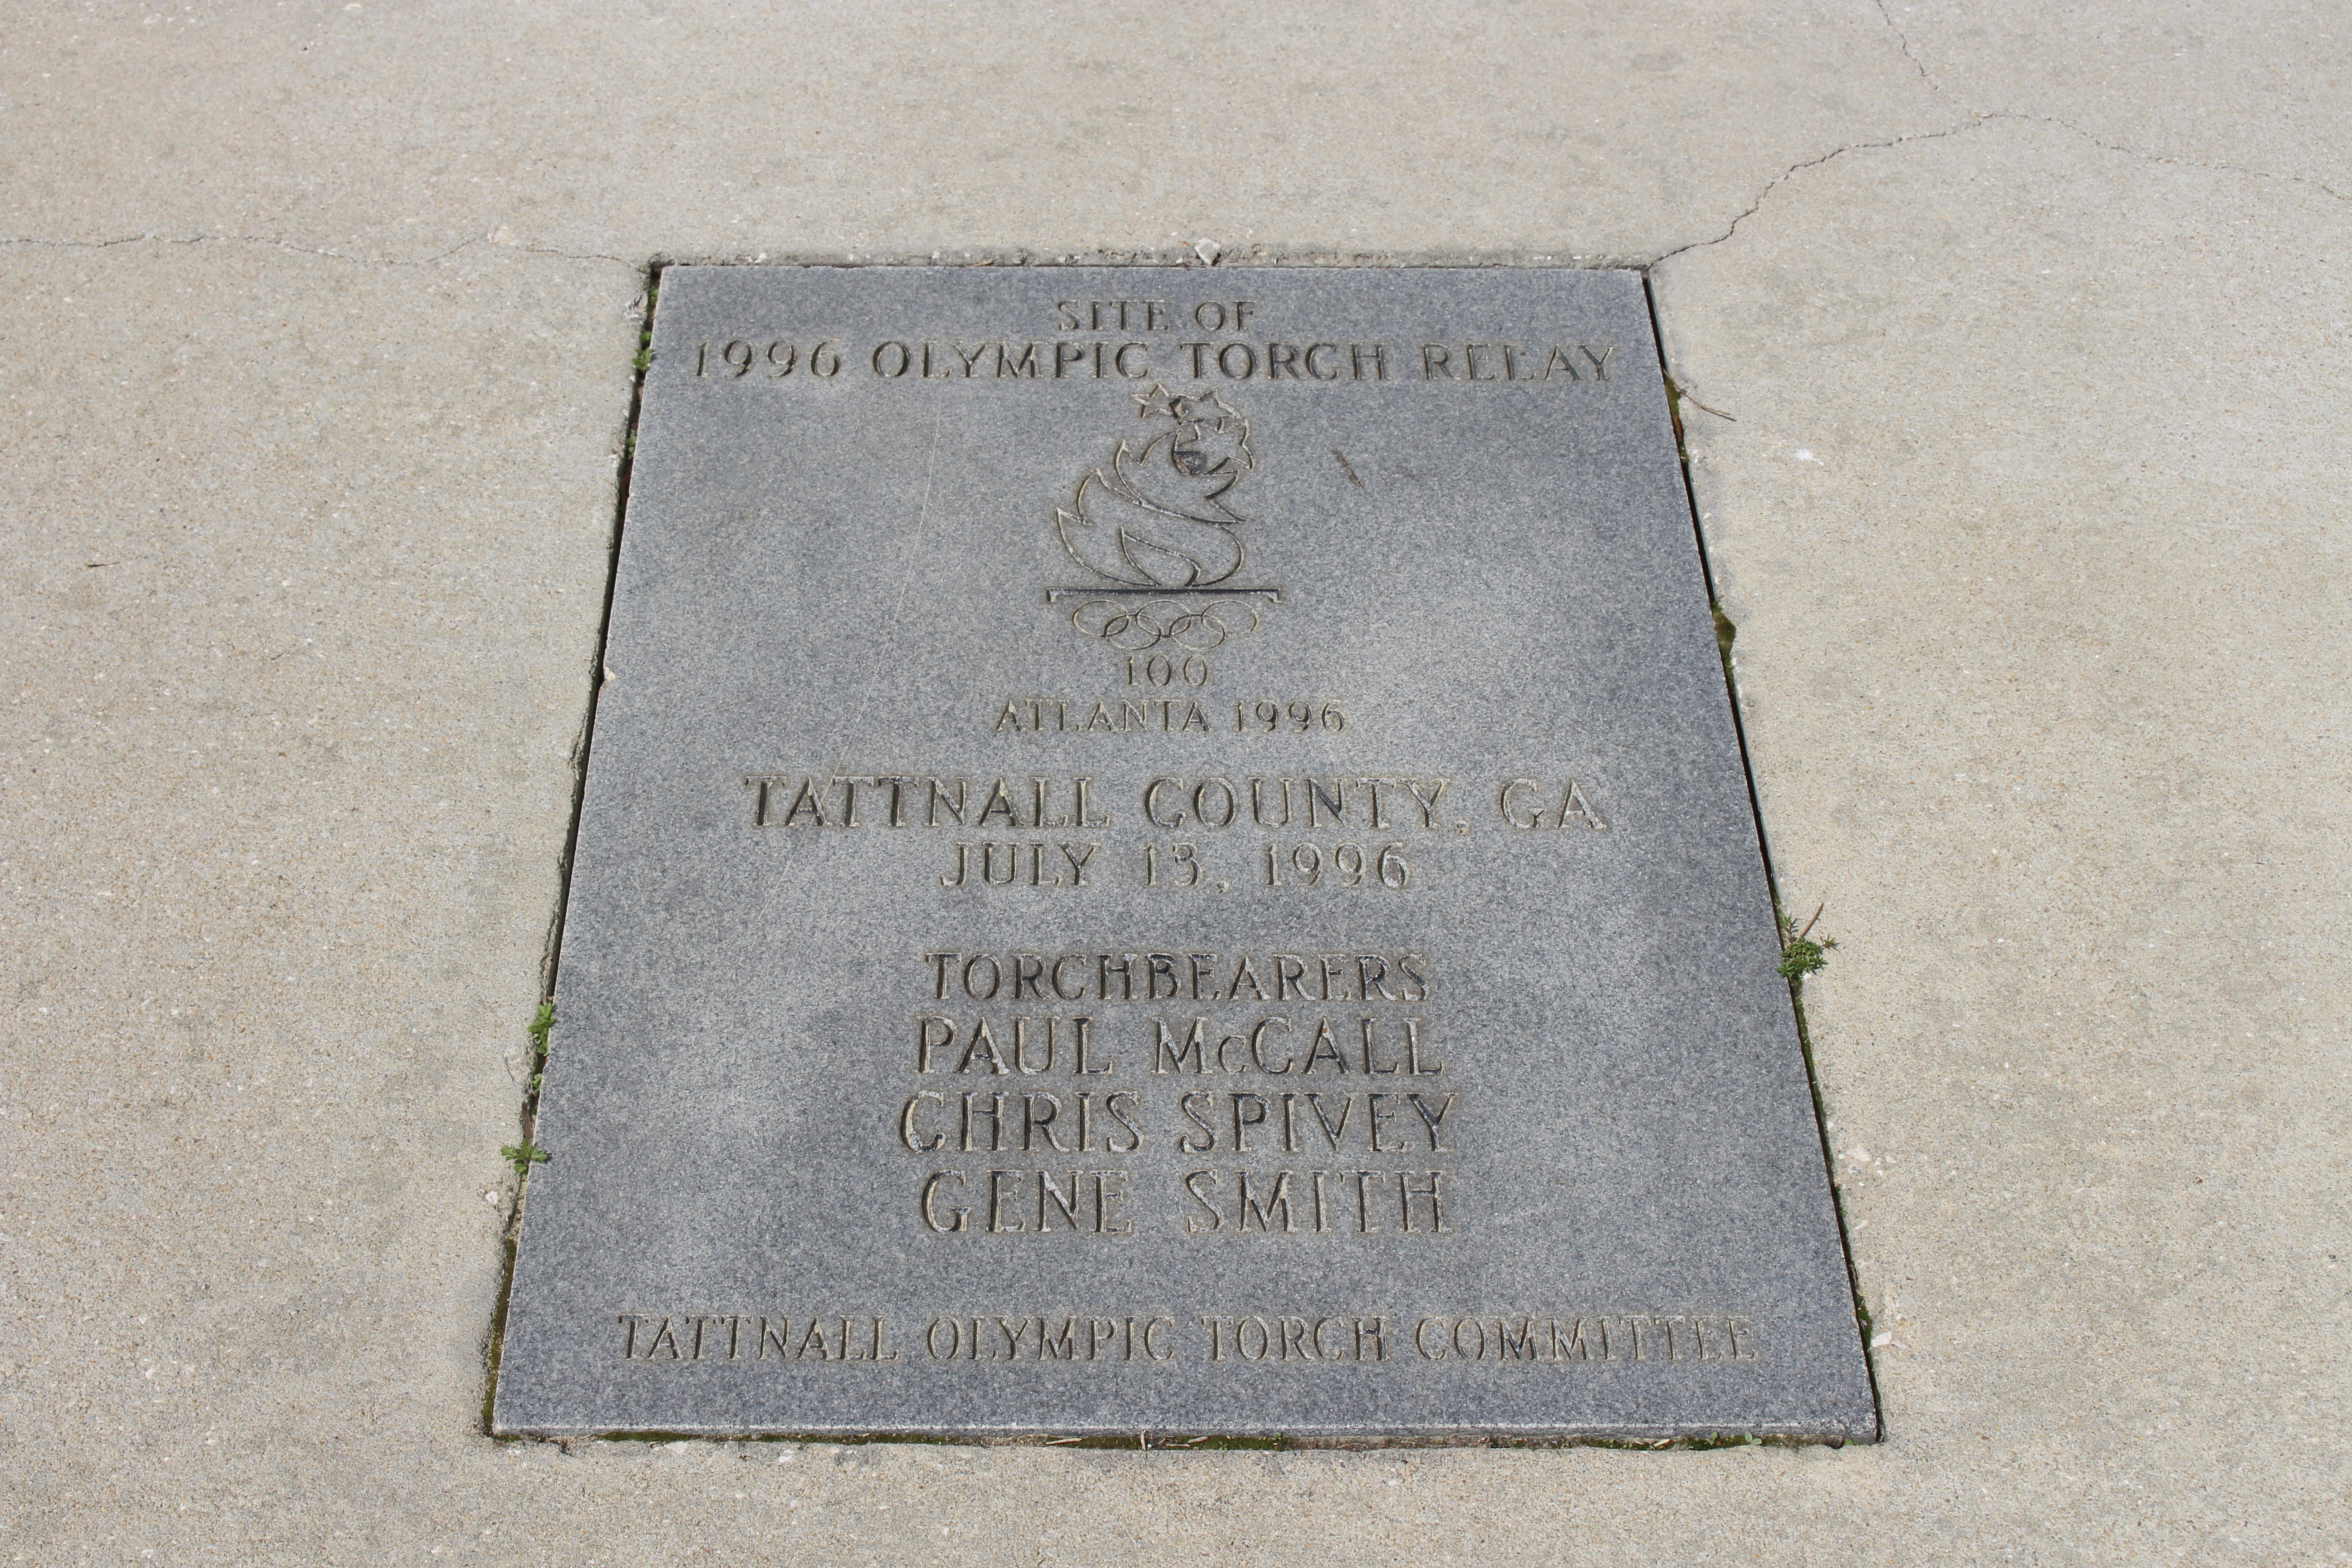 File:1996 Olympic Torch Relay plaque, Reidsville jpg - Wikimedia Commons